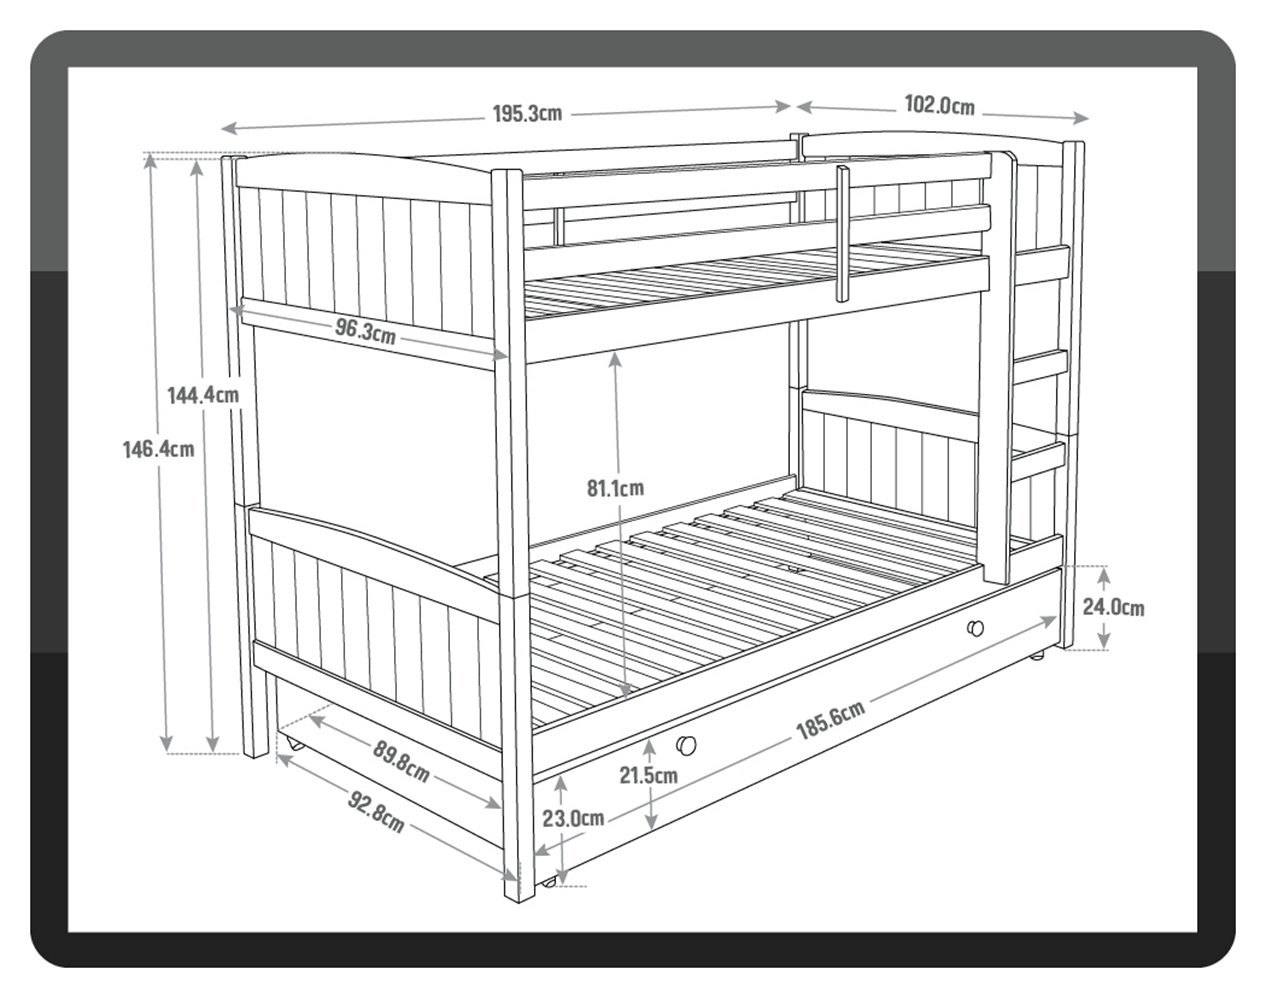 Image of Detachable Bunk Bed with Storage and Ashley Mattress - Pine